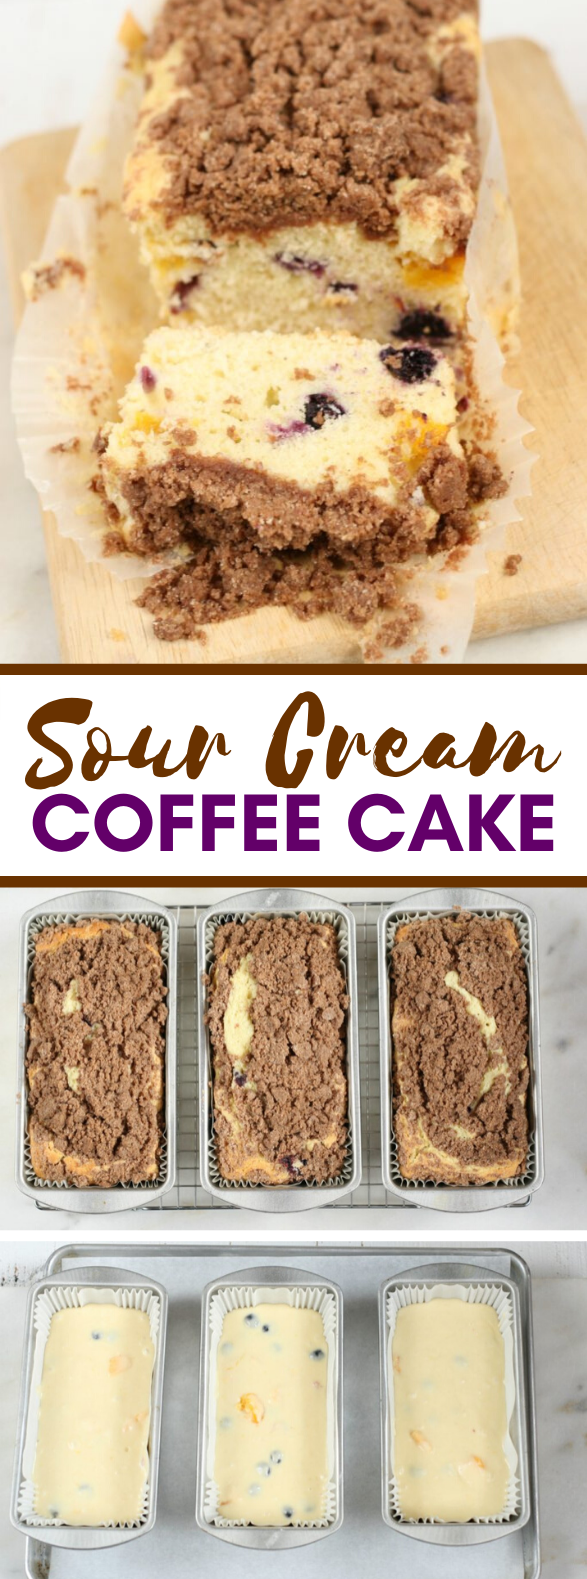 EASY SOUR CREAM COFFEE CAKE #desserts #sweets